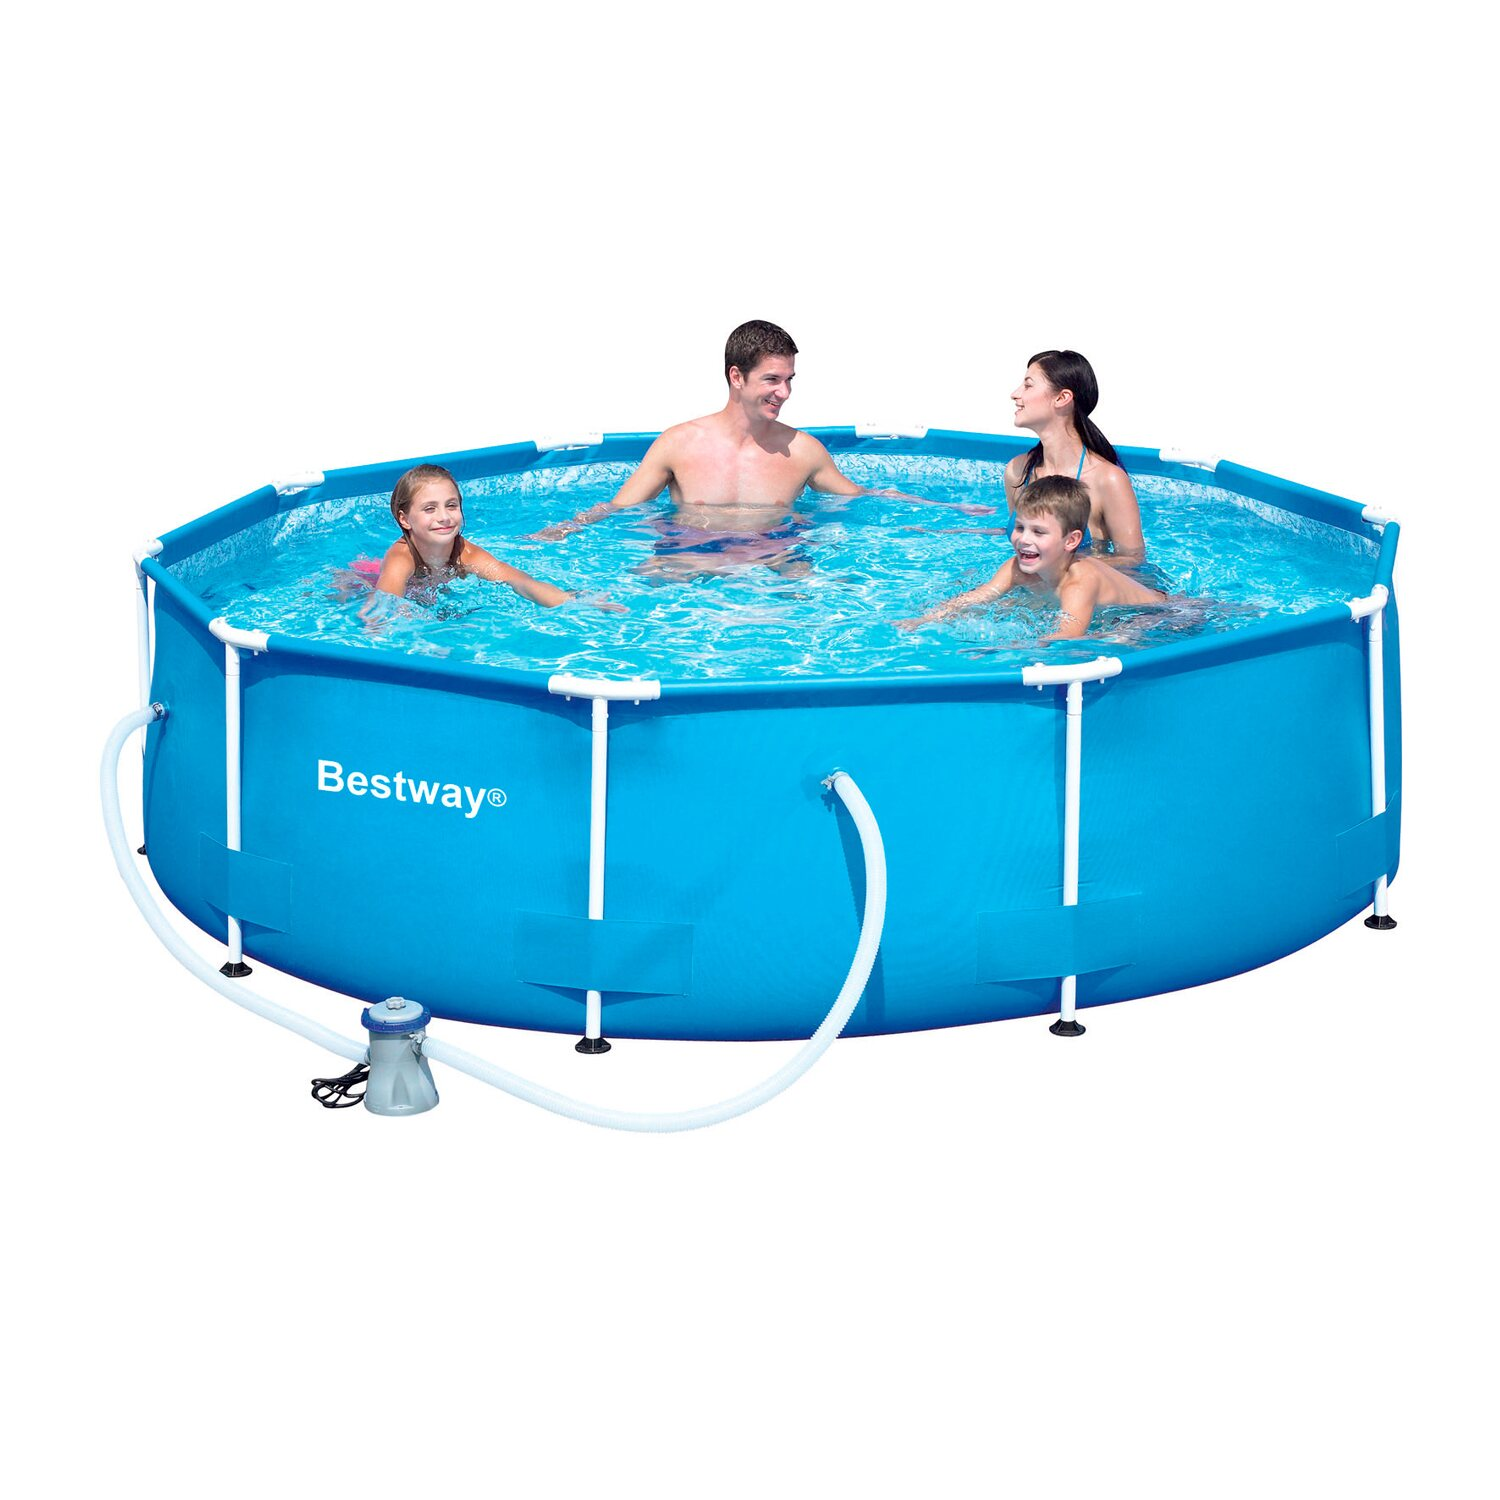 Bestway stahlrahmen swimming pool set 305 cm x 76 cm for Bestway pool obi